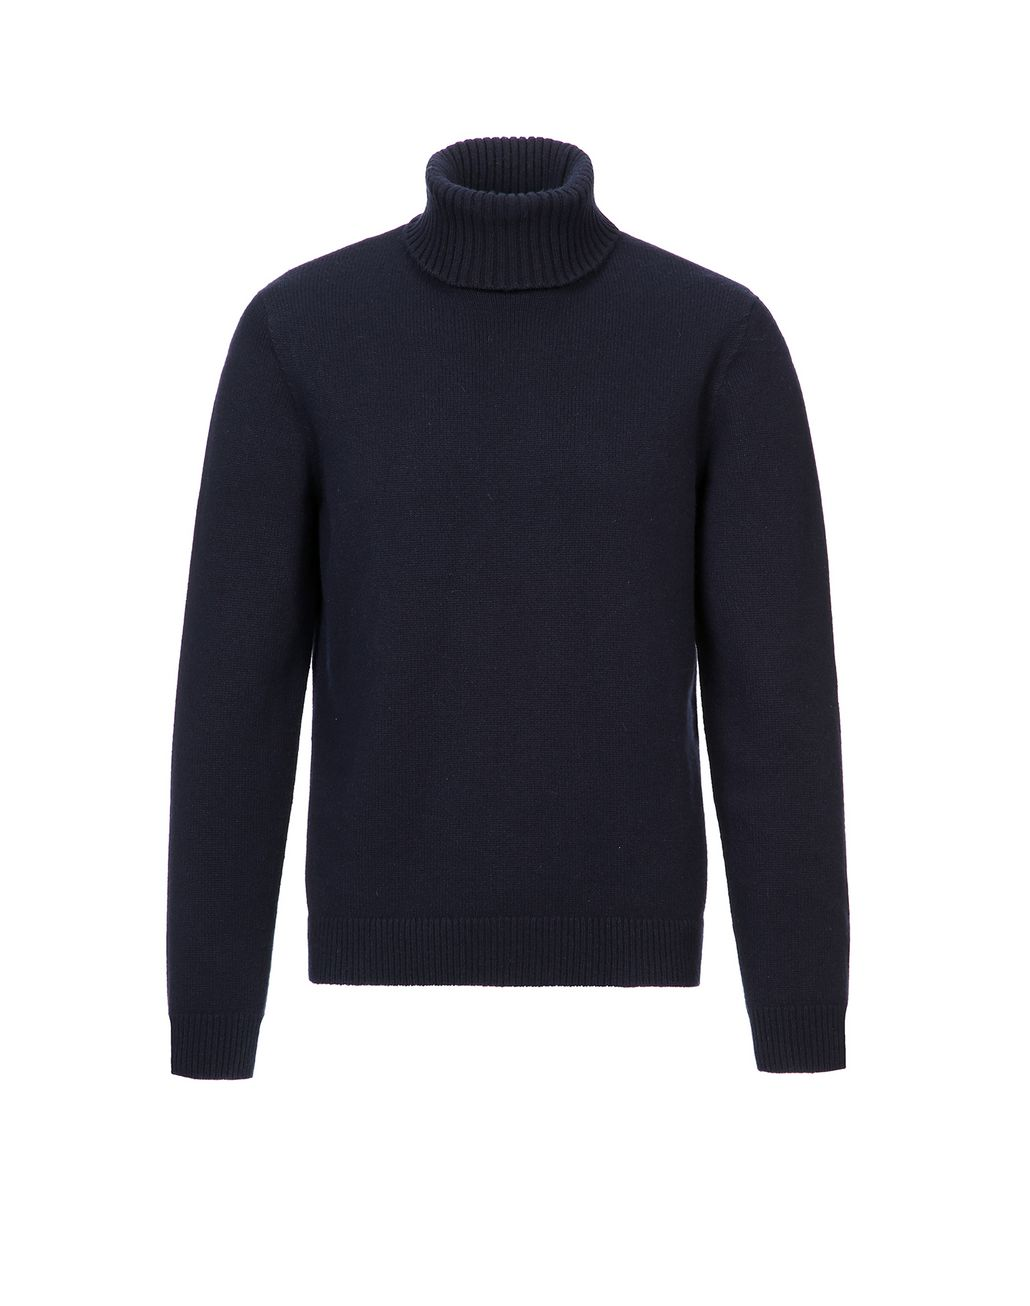 BRIONI Navy Blue Turtleneck Sweater Knitwear [*** pickupInStoreShippingNotGuaranteed_info ***] f